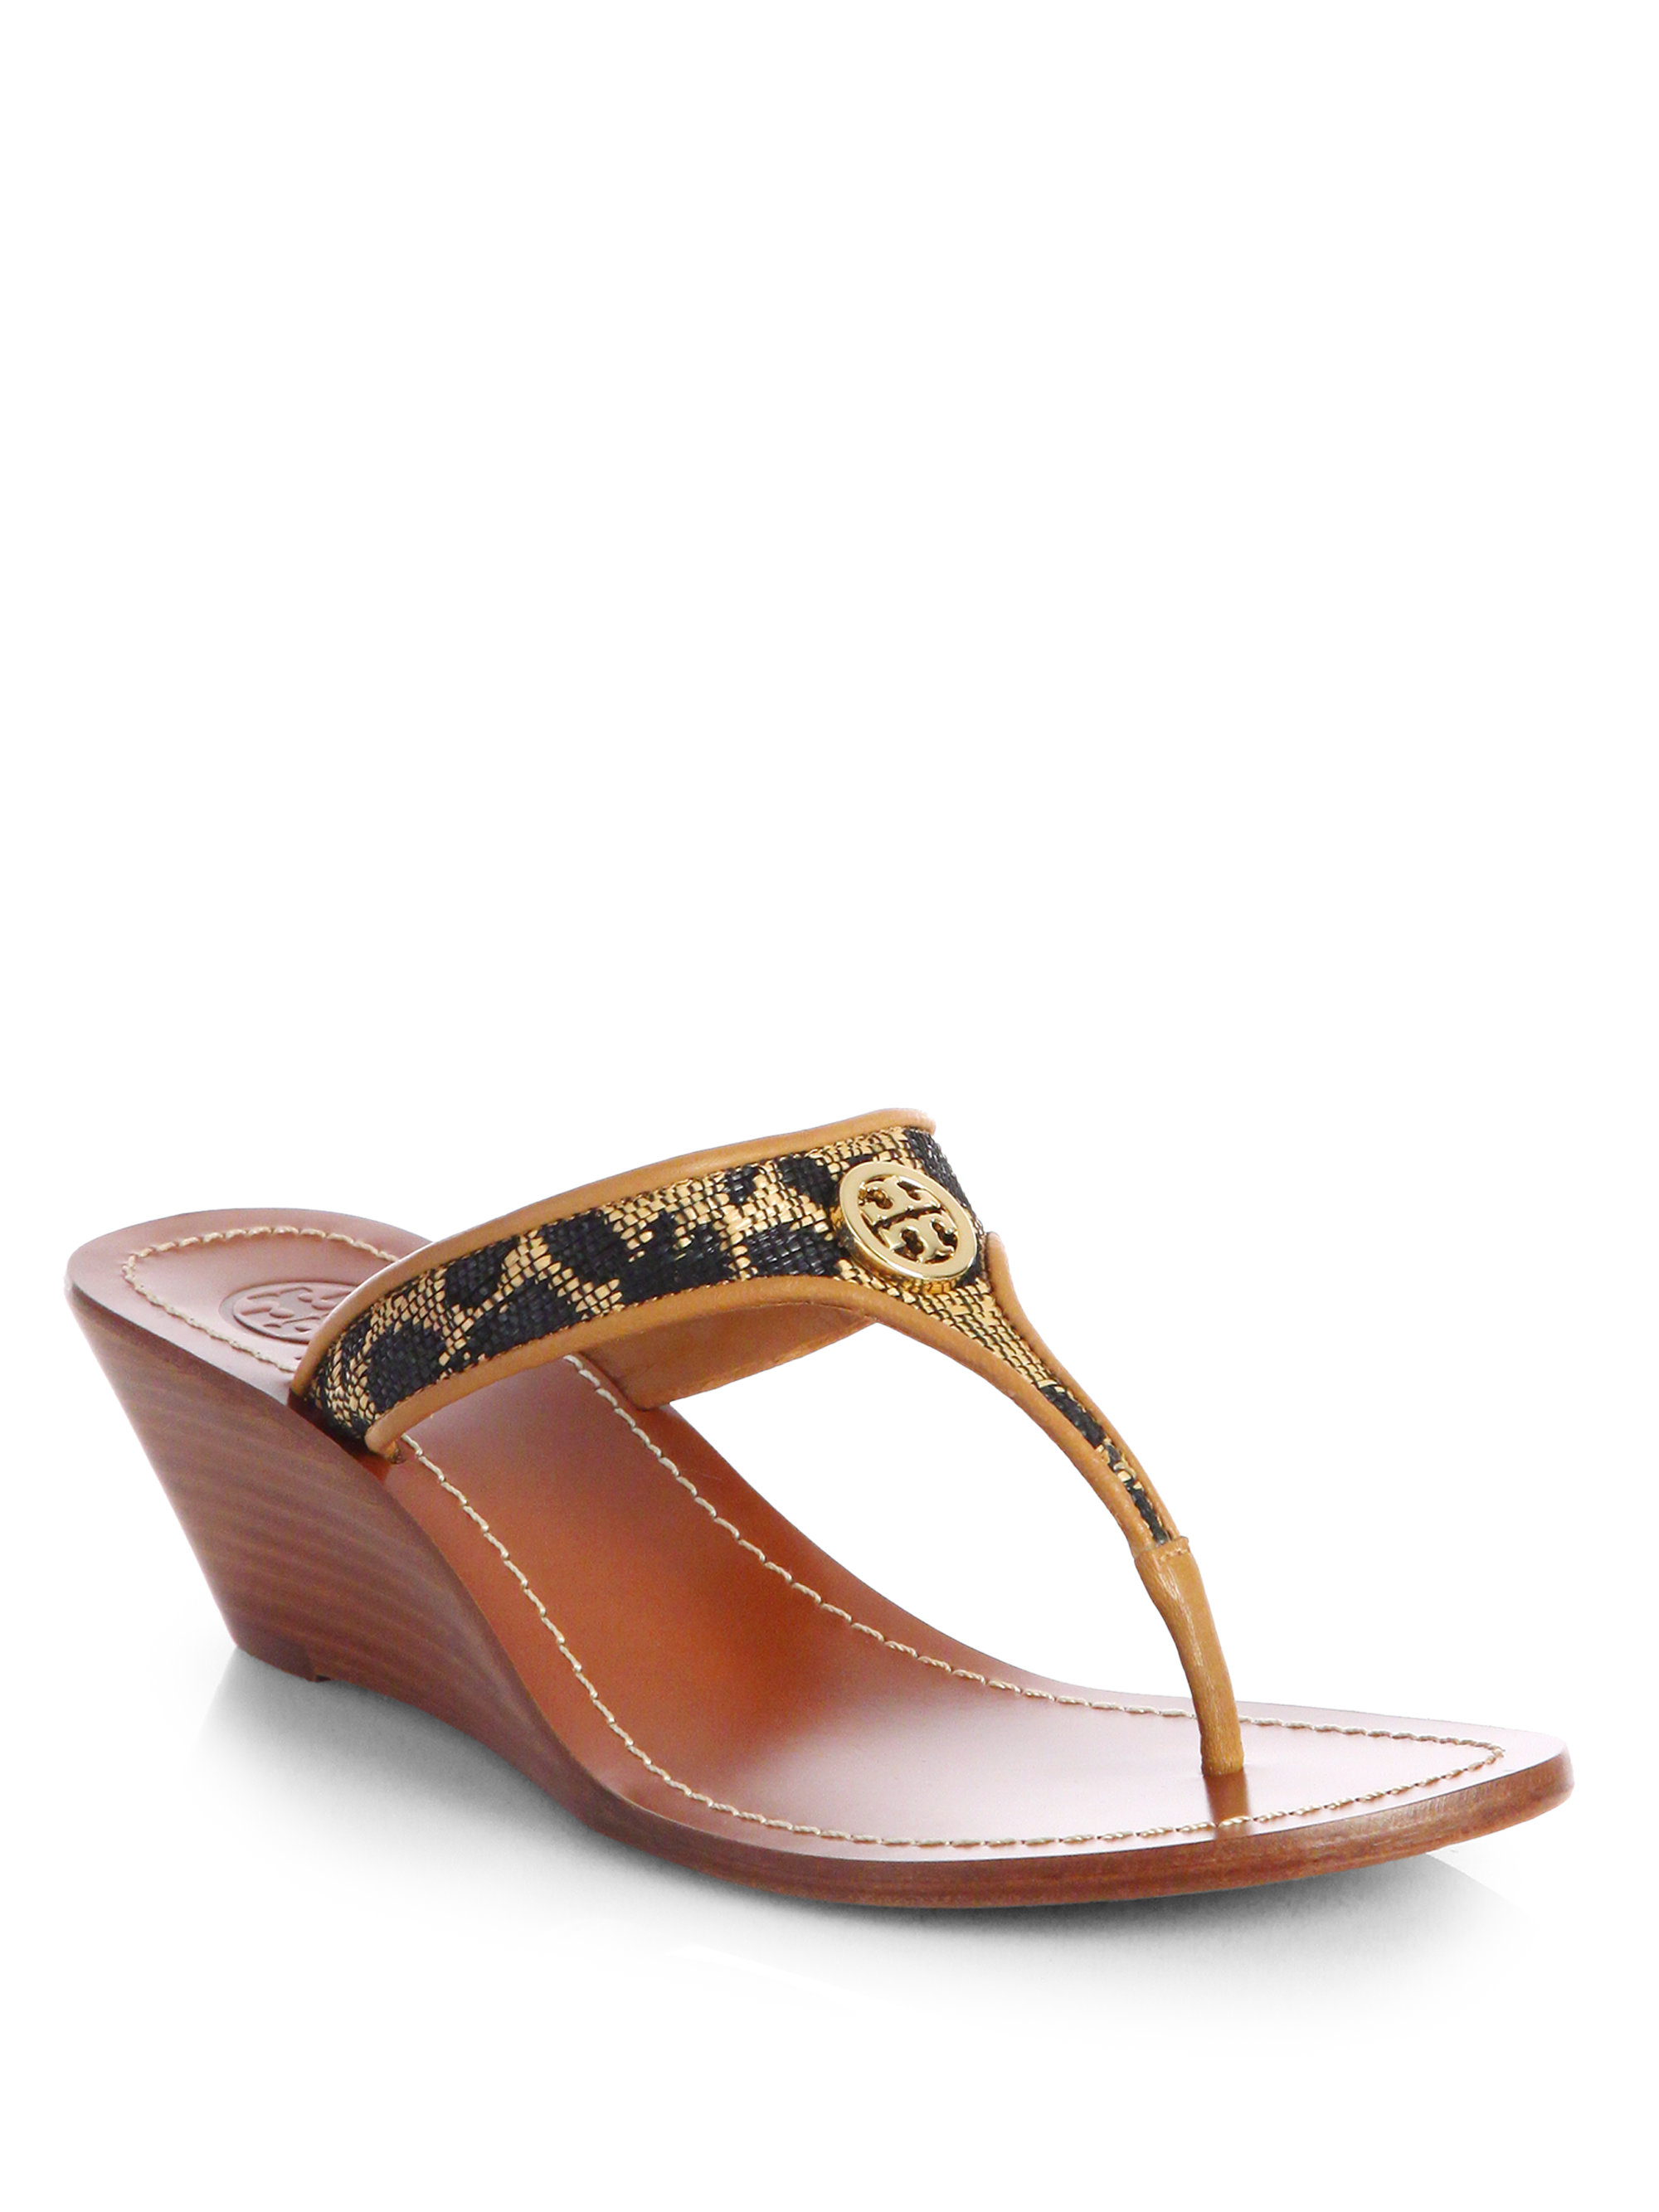 Tory Burch Cameron Leopardprint Leather Wedge Sandals In